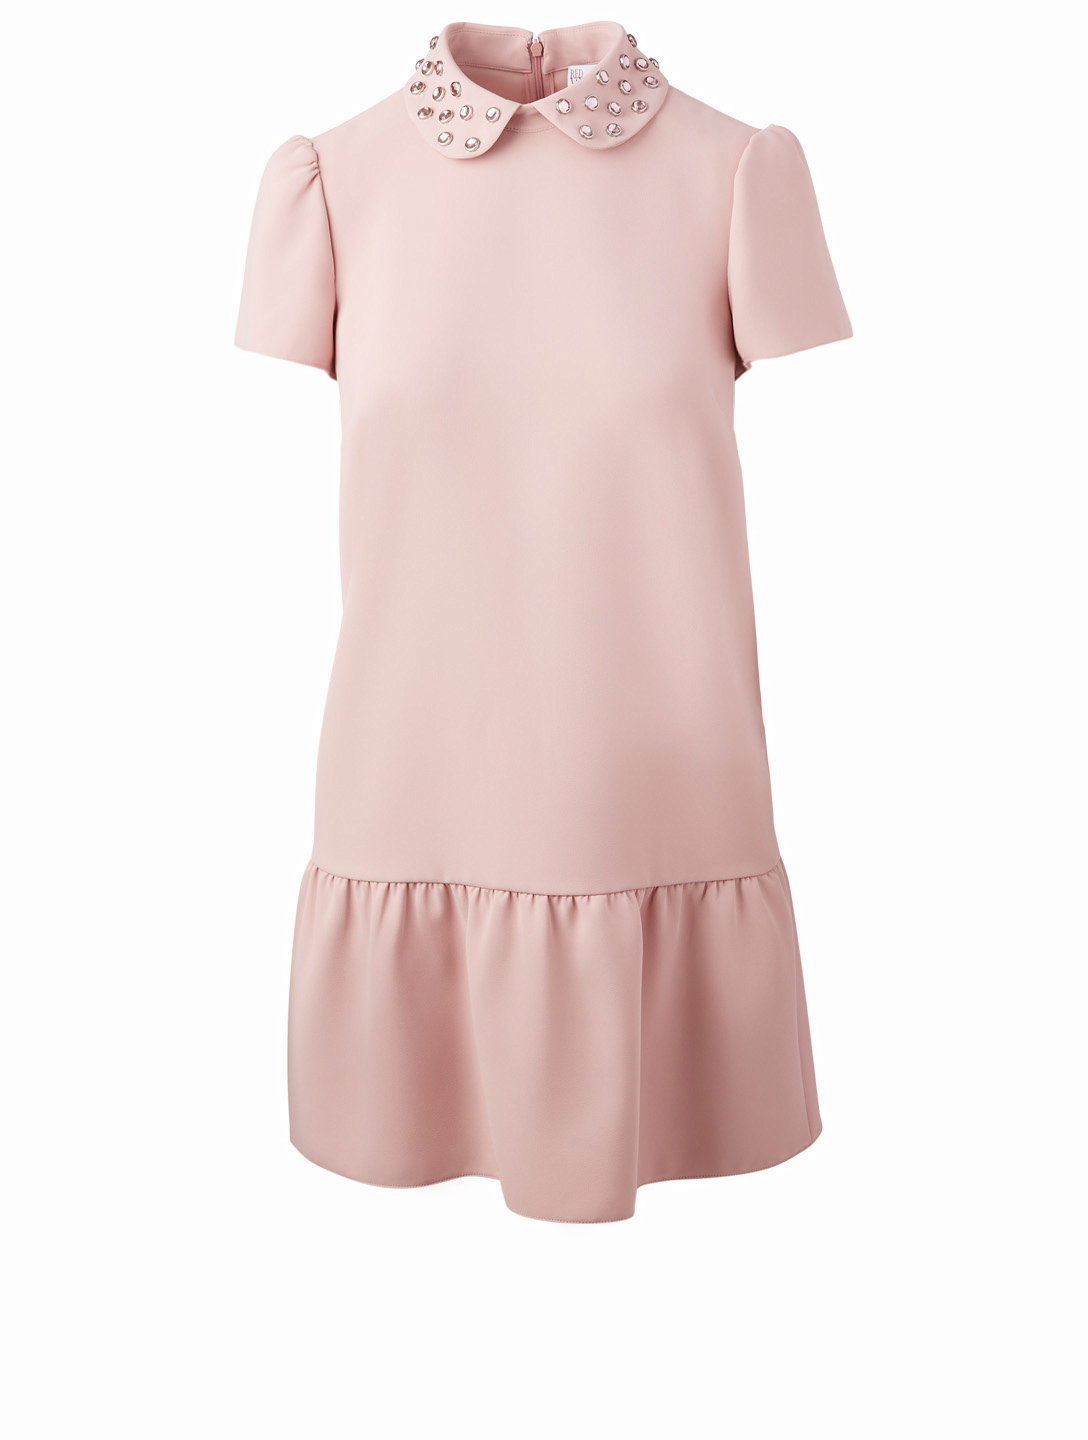 4158d588a01a RED VALENTINO Techno Fluid Dress With Crystal Collar Women s ...